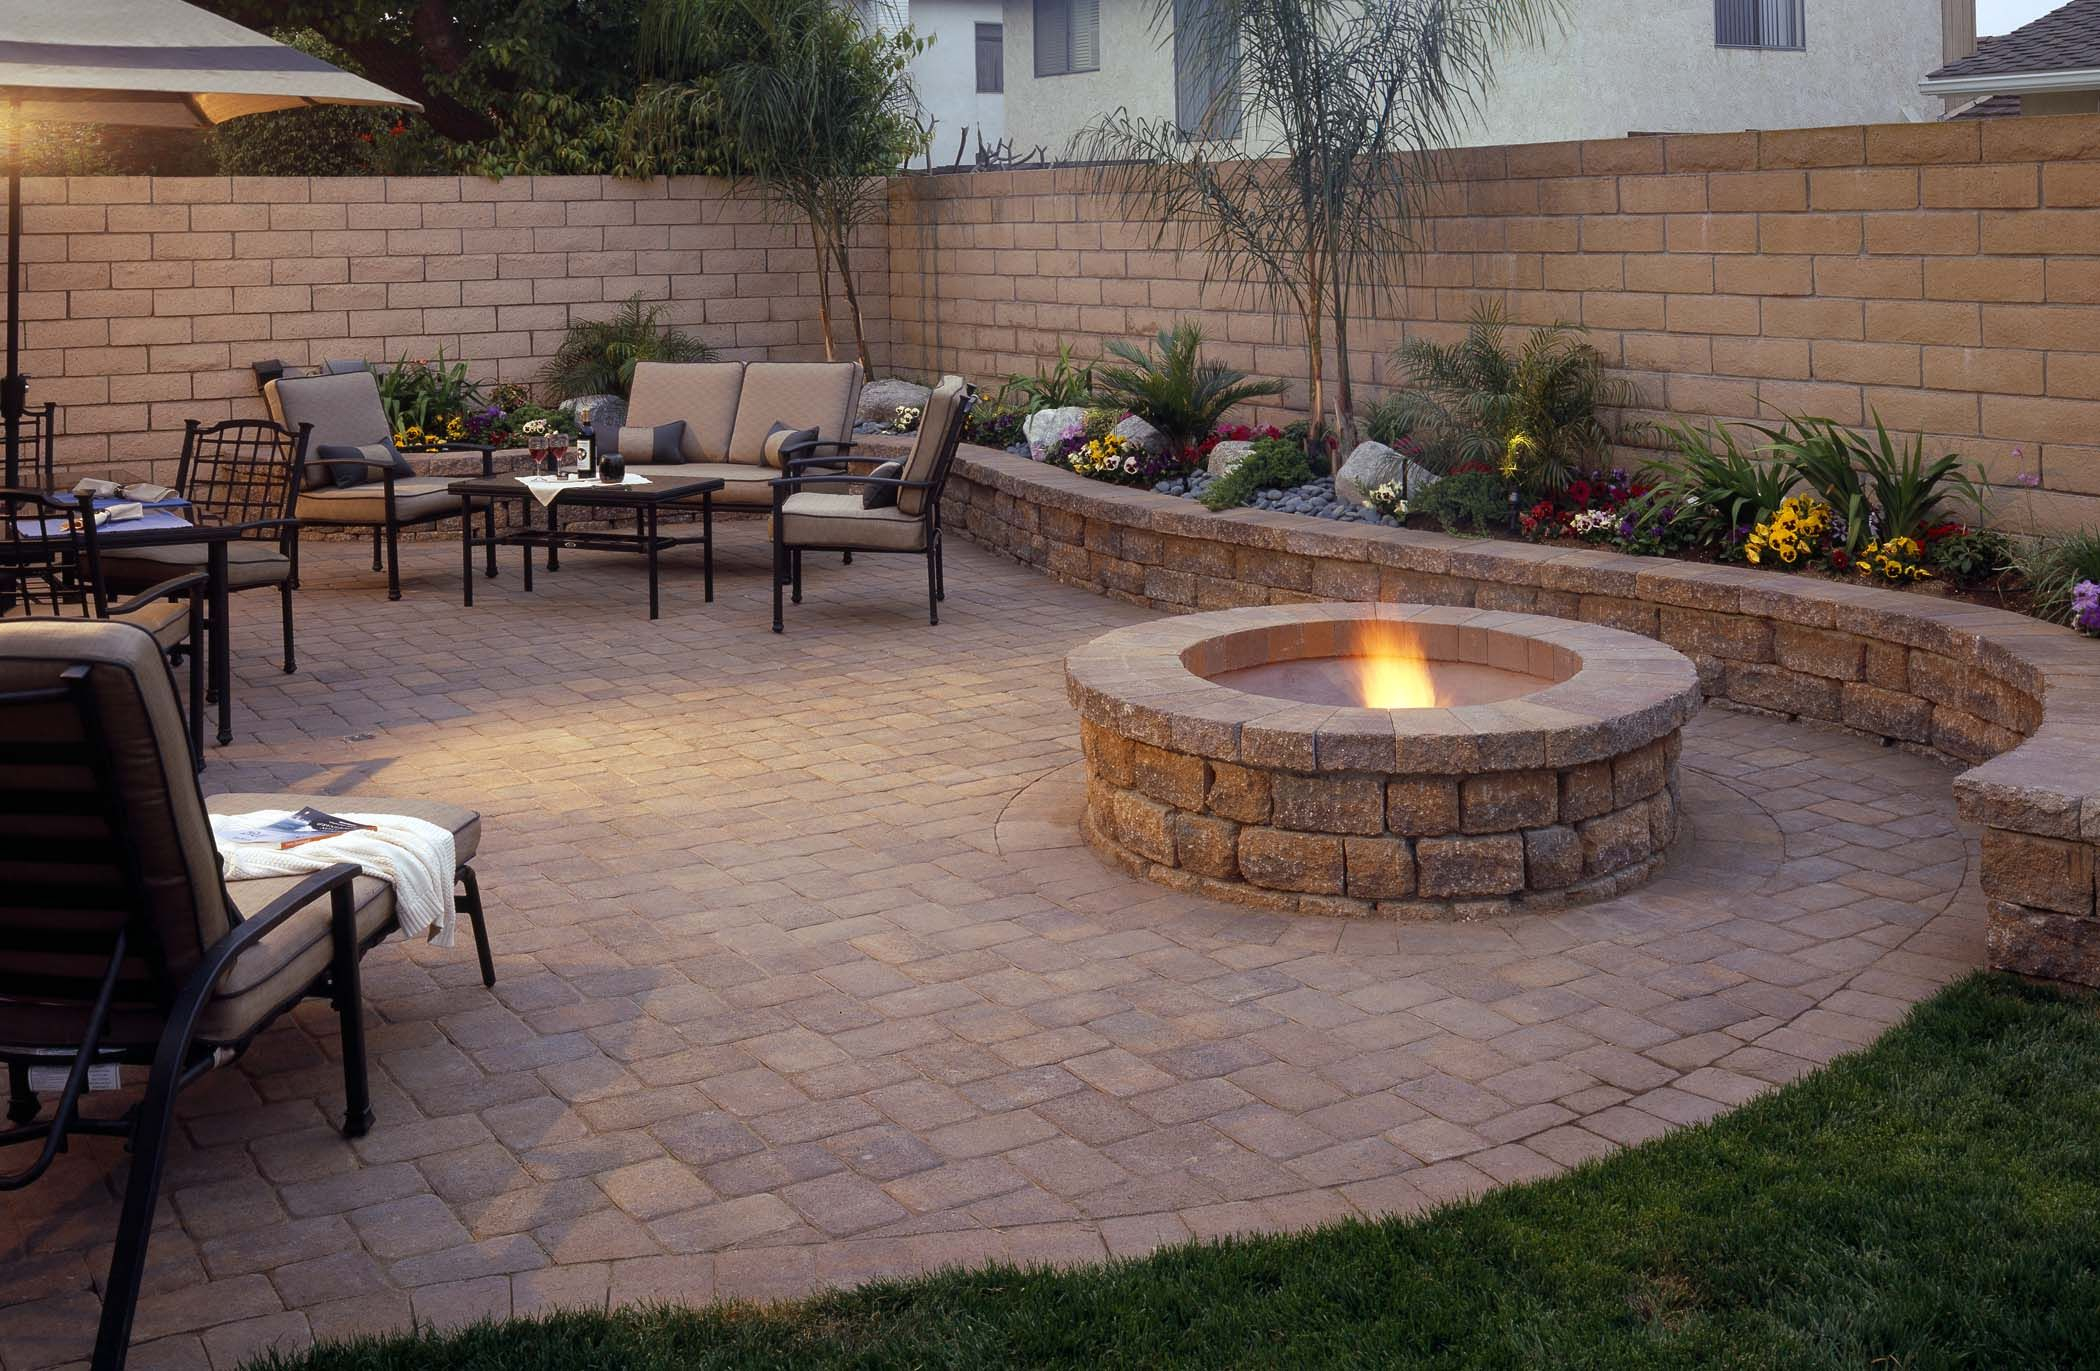 Best Backyard Paver Patio Ideas Designs Design Idea And Decor within 11 Smart Initiatives of How to Craft Backyard Stone Patio Design Ideas